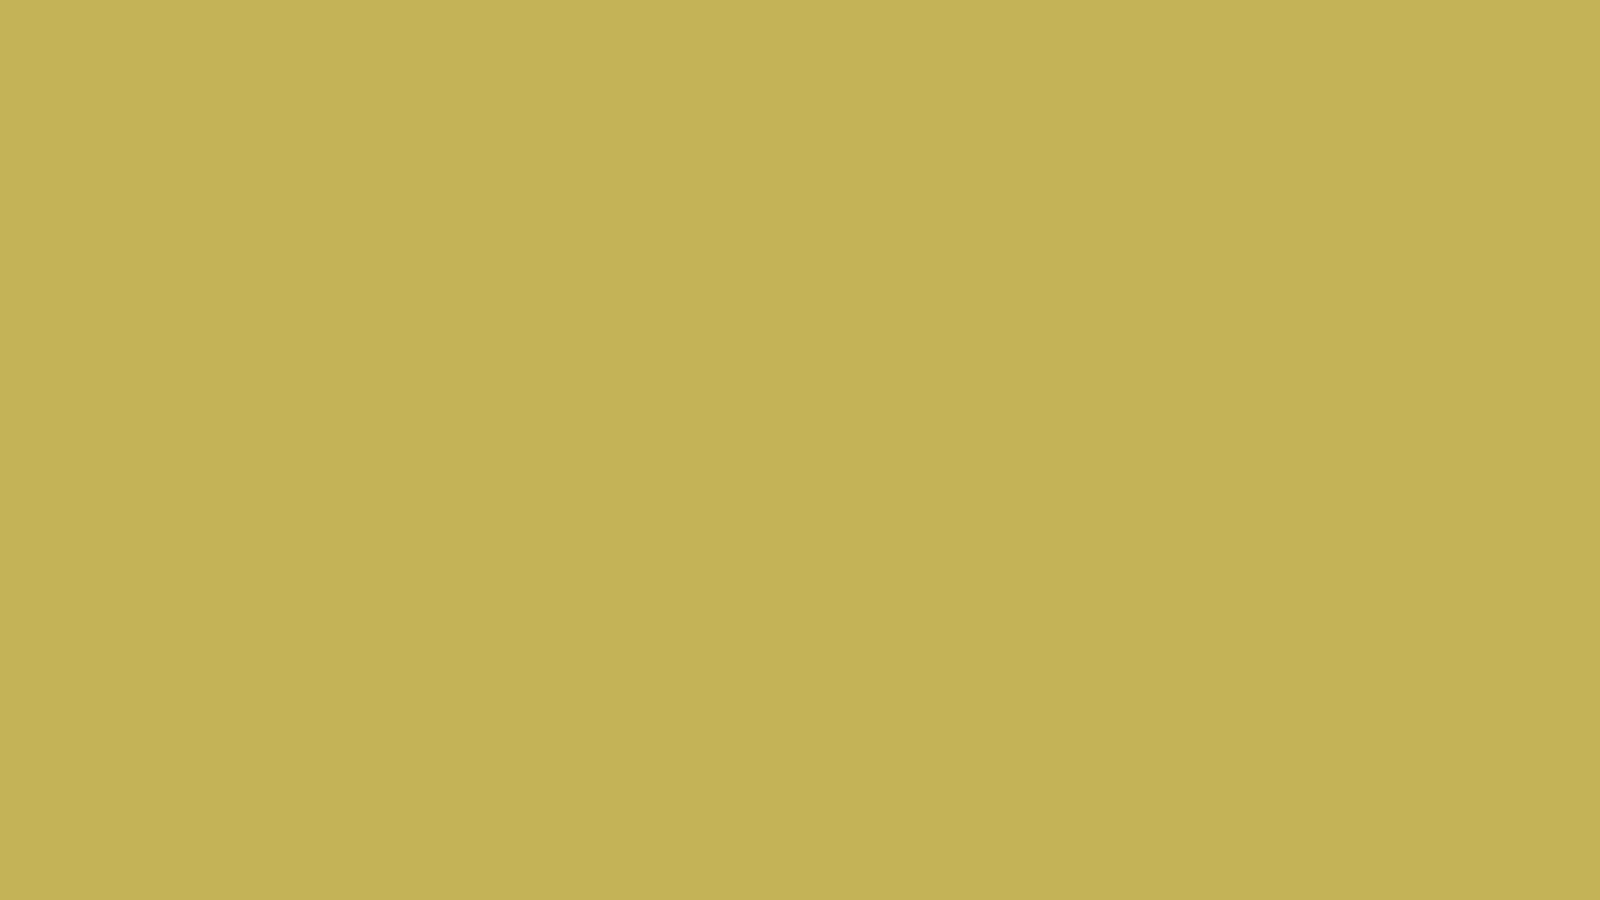 1600x900 Vegas Gold Solid Color Background